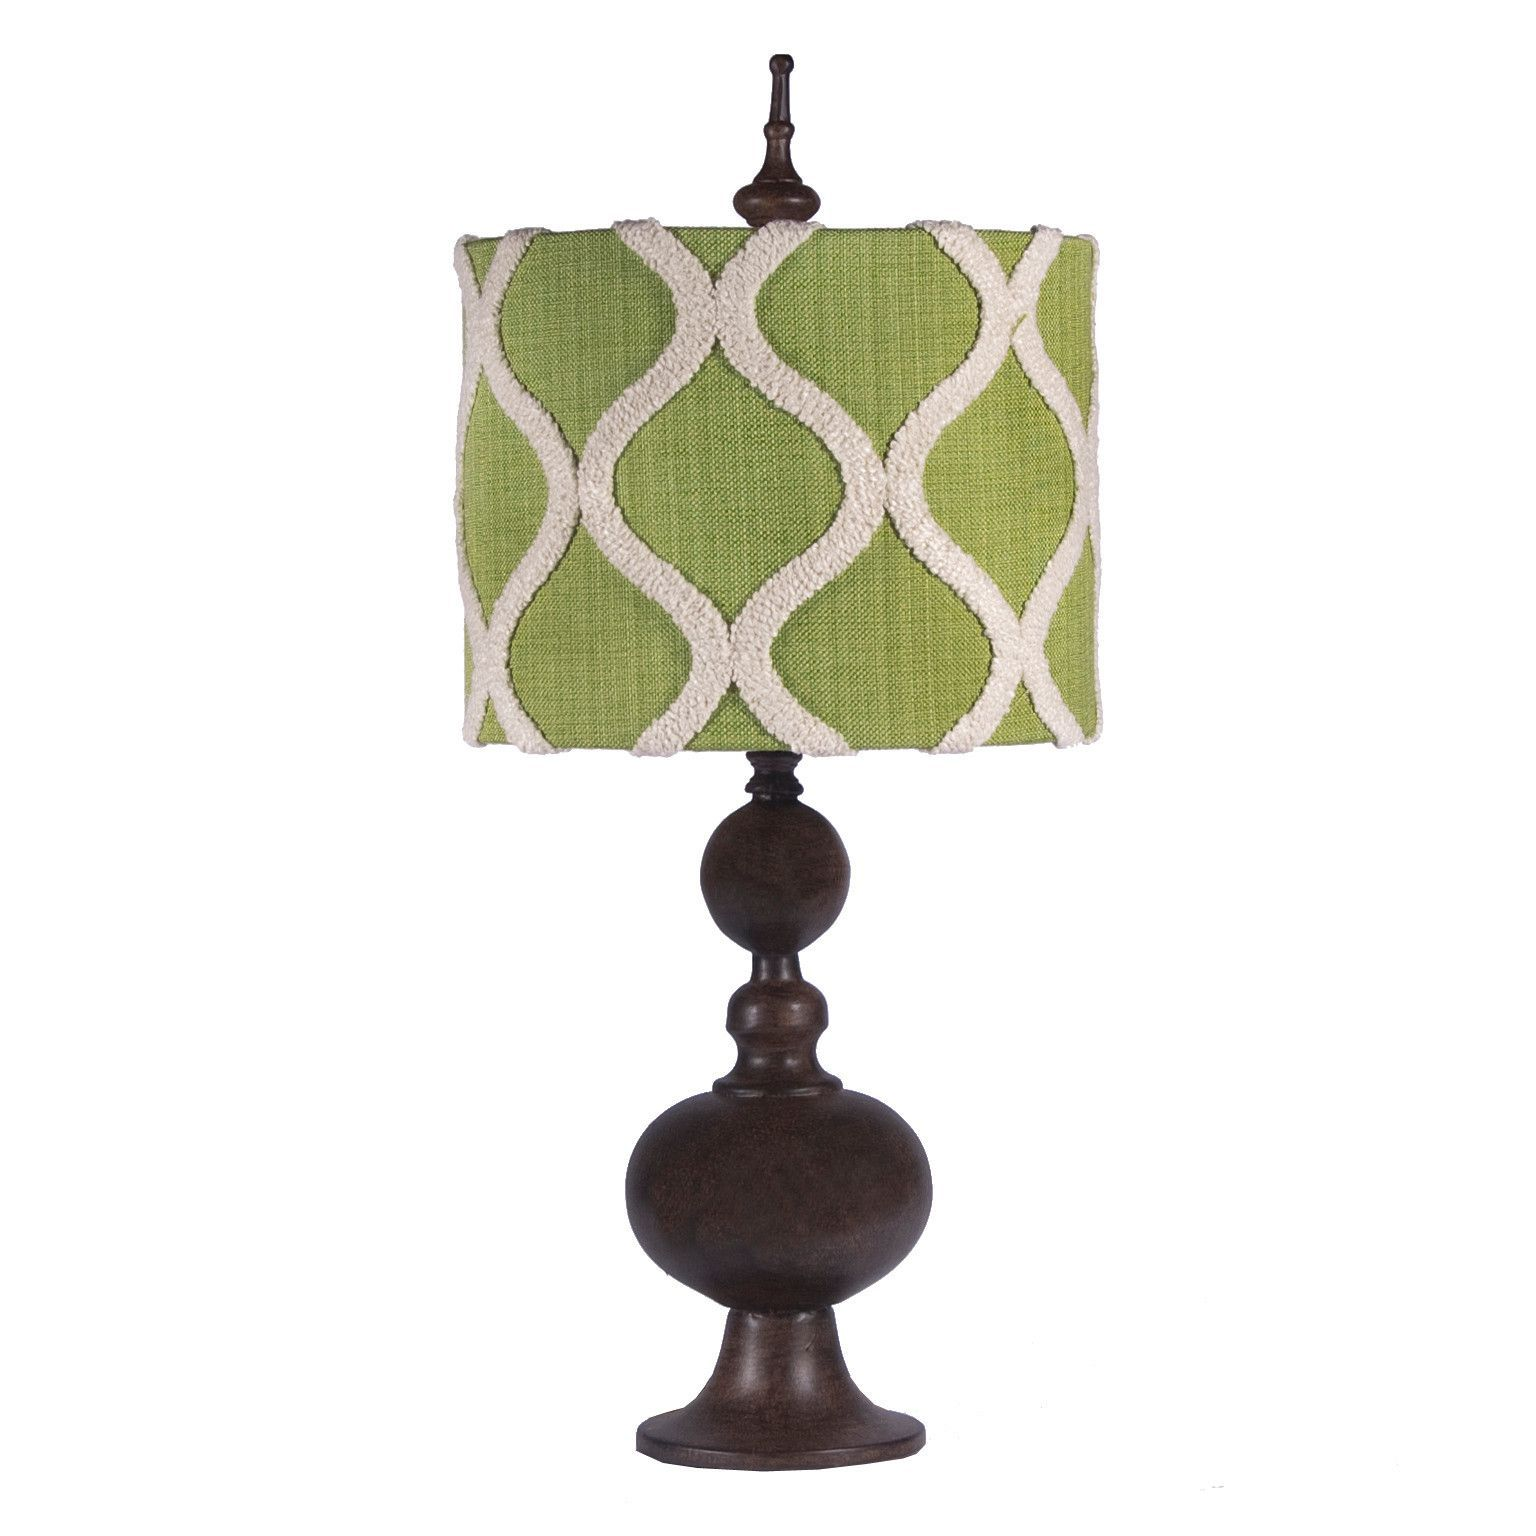 Green shaded brown lamp by gallery designs products pinterest small table lamp with textured ogee design green lamp shade geotapseo Images